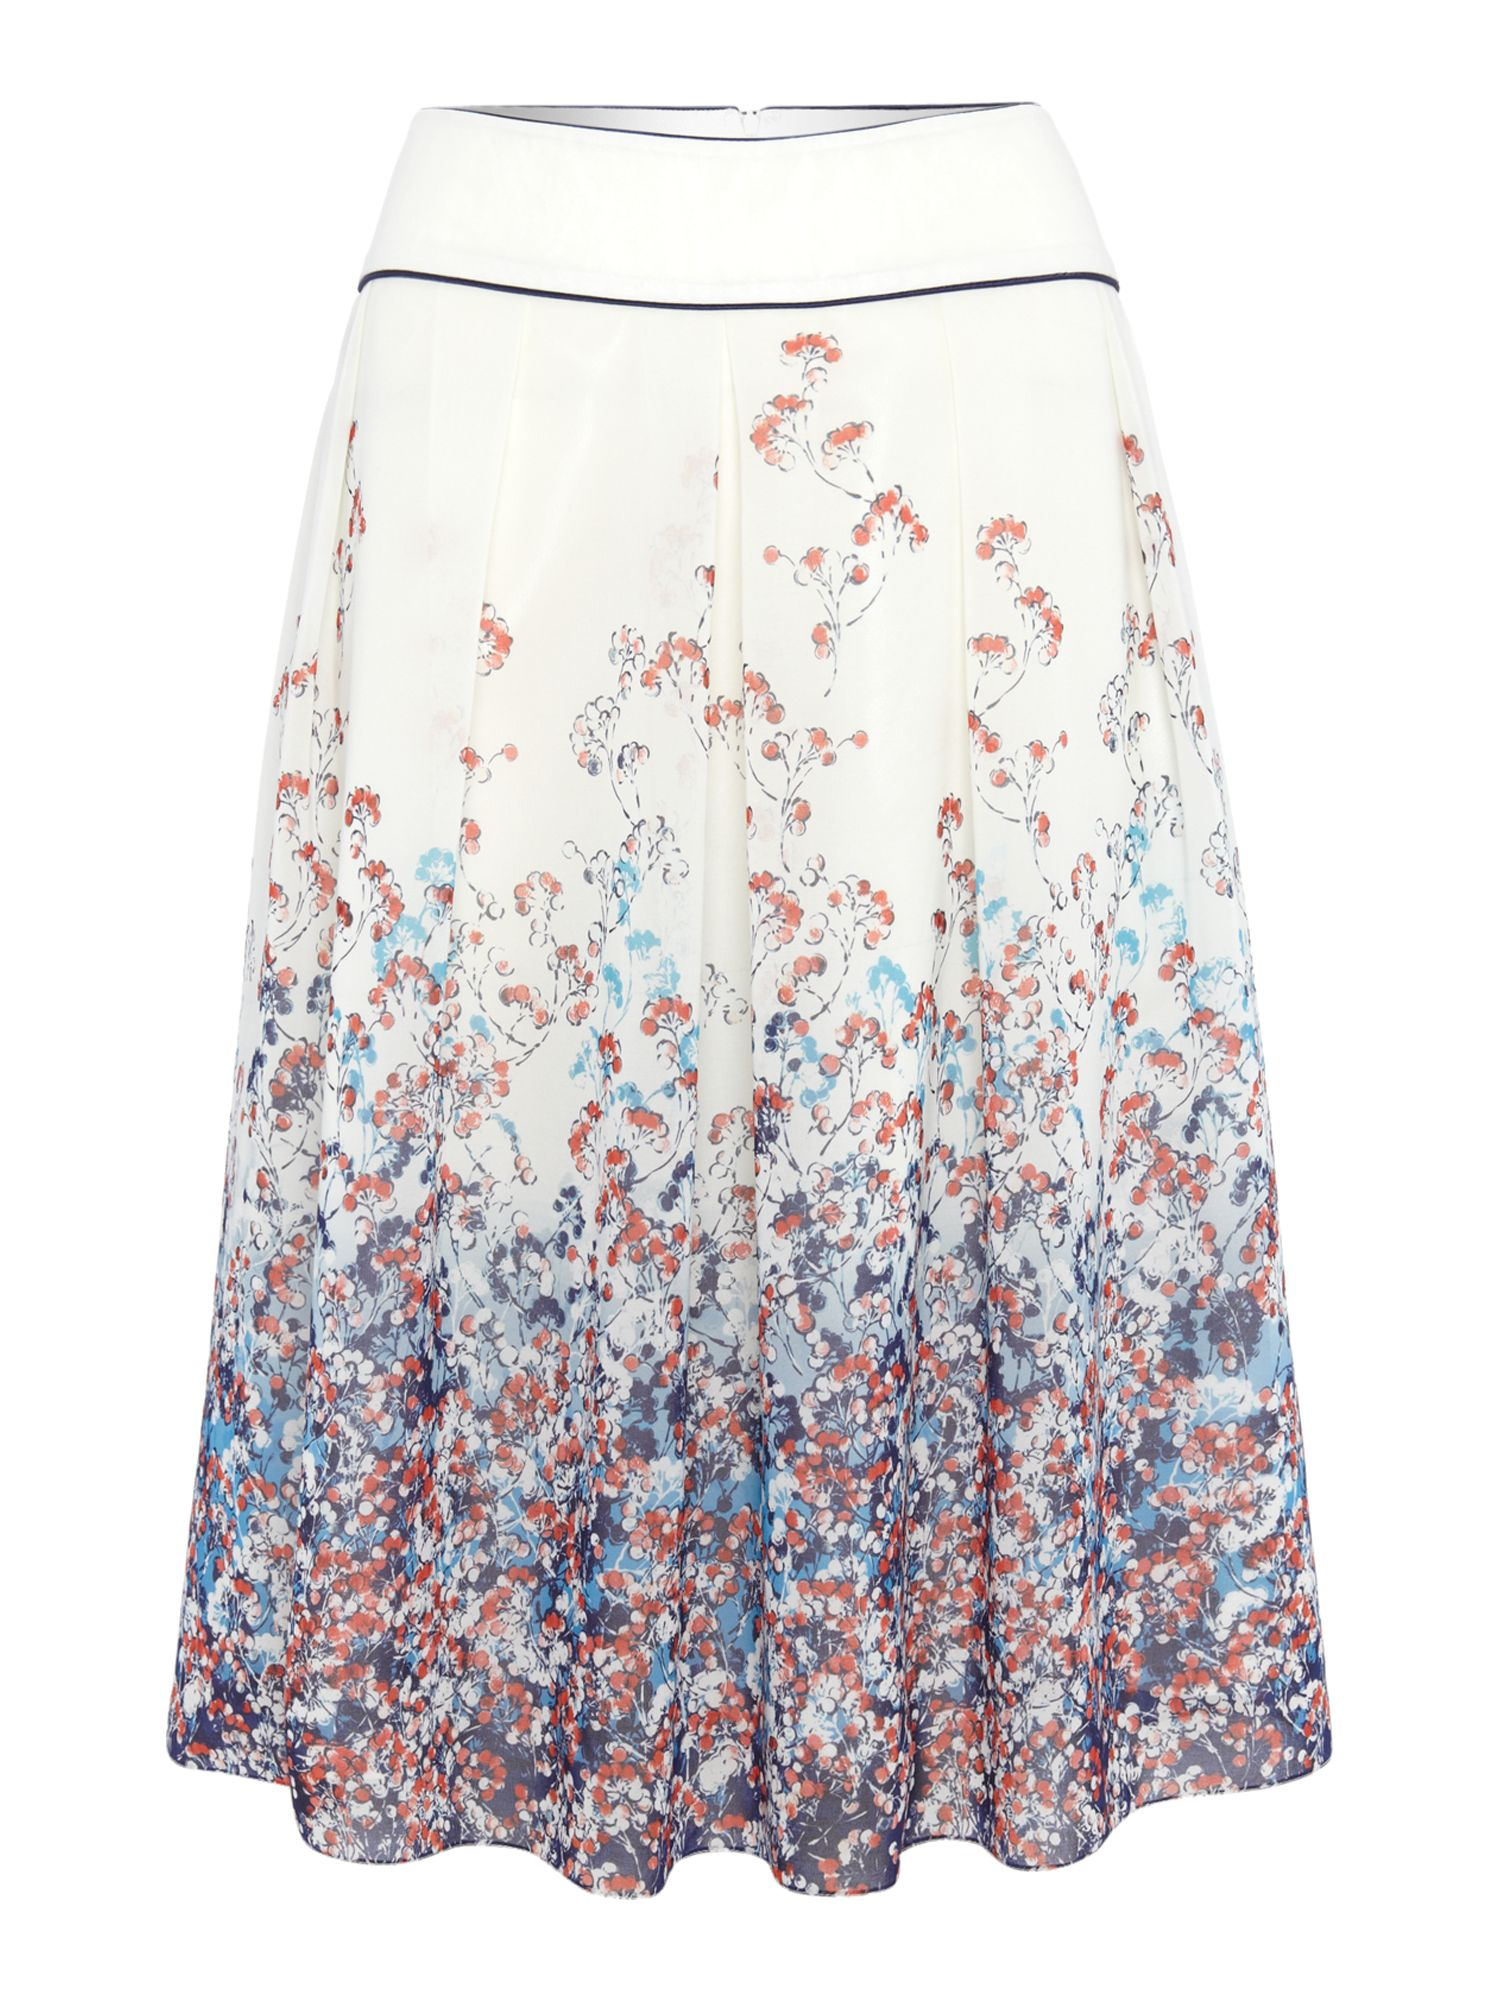 Heather floral print skirt